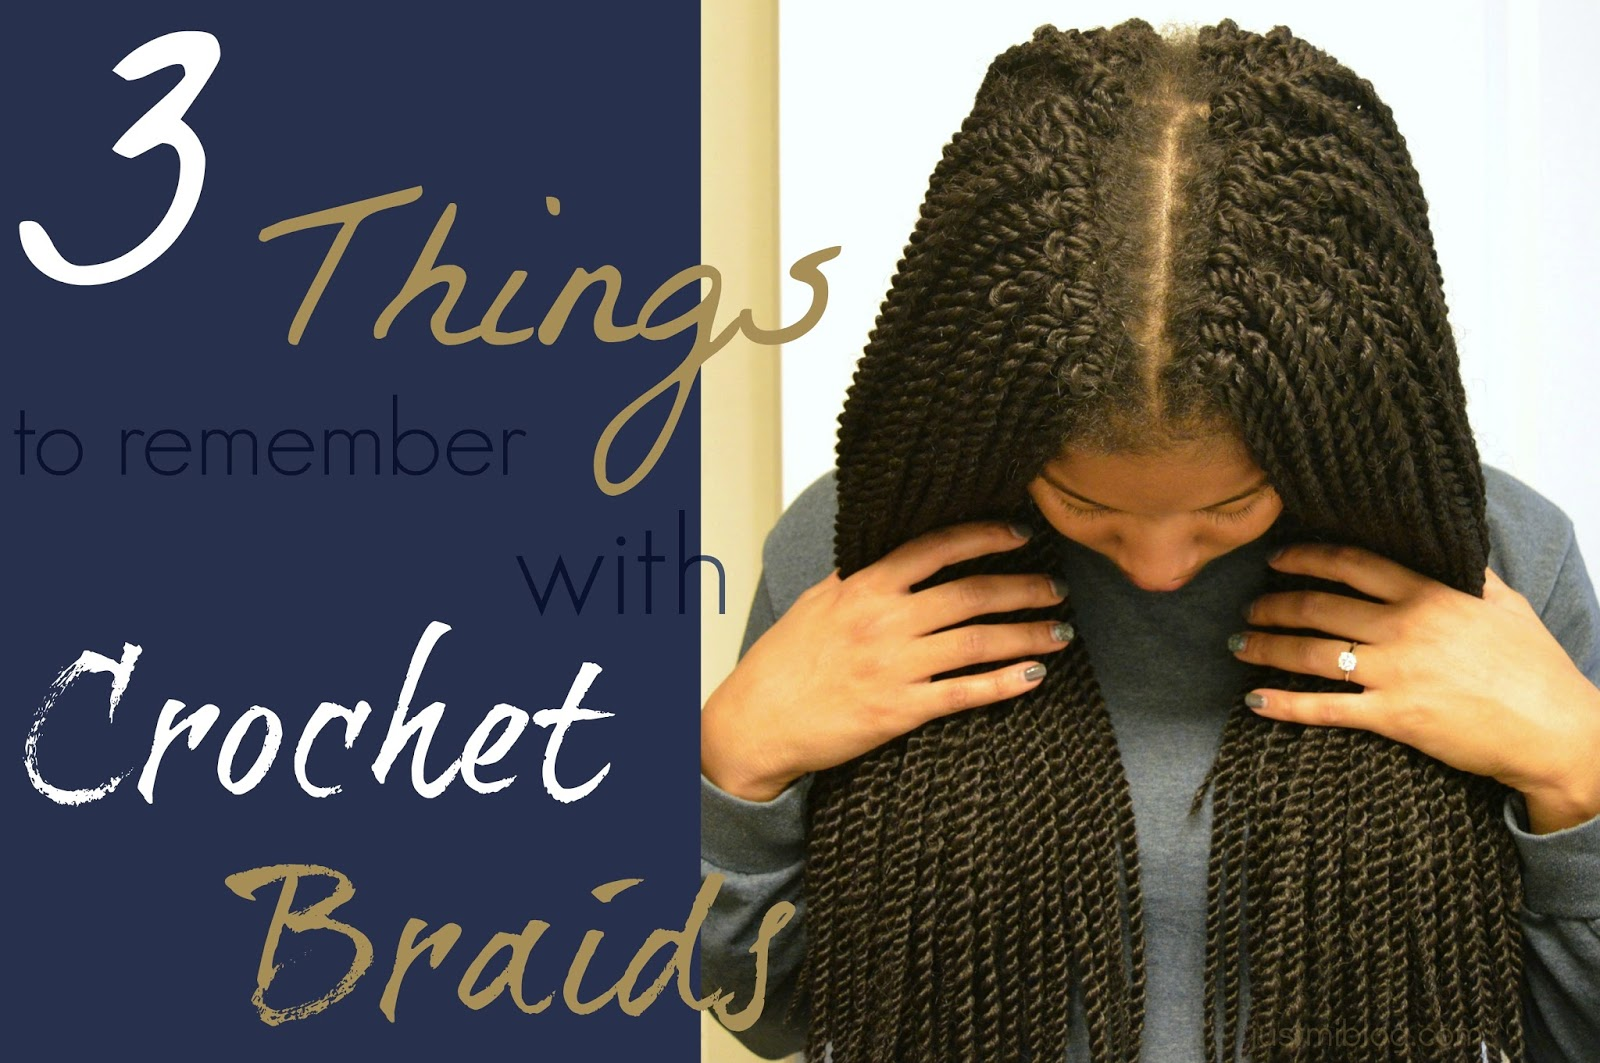 3 Things To Remember With Crochet Braids | Just Mi!